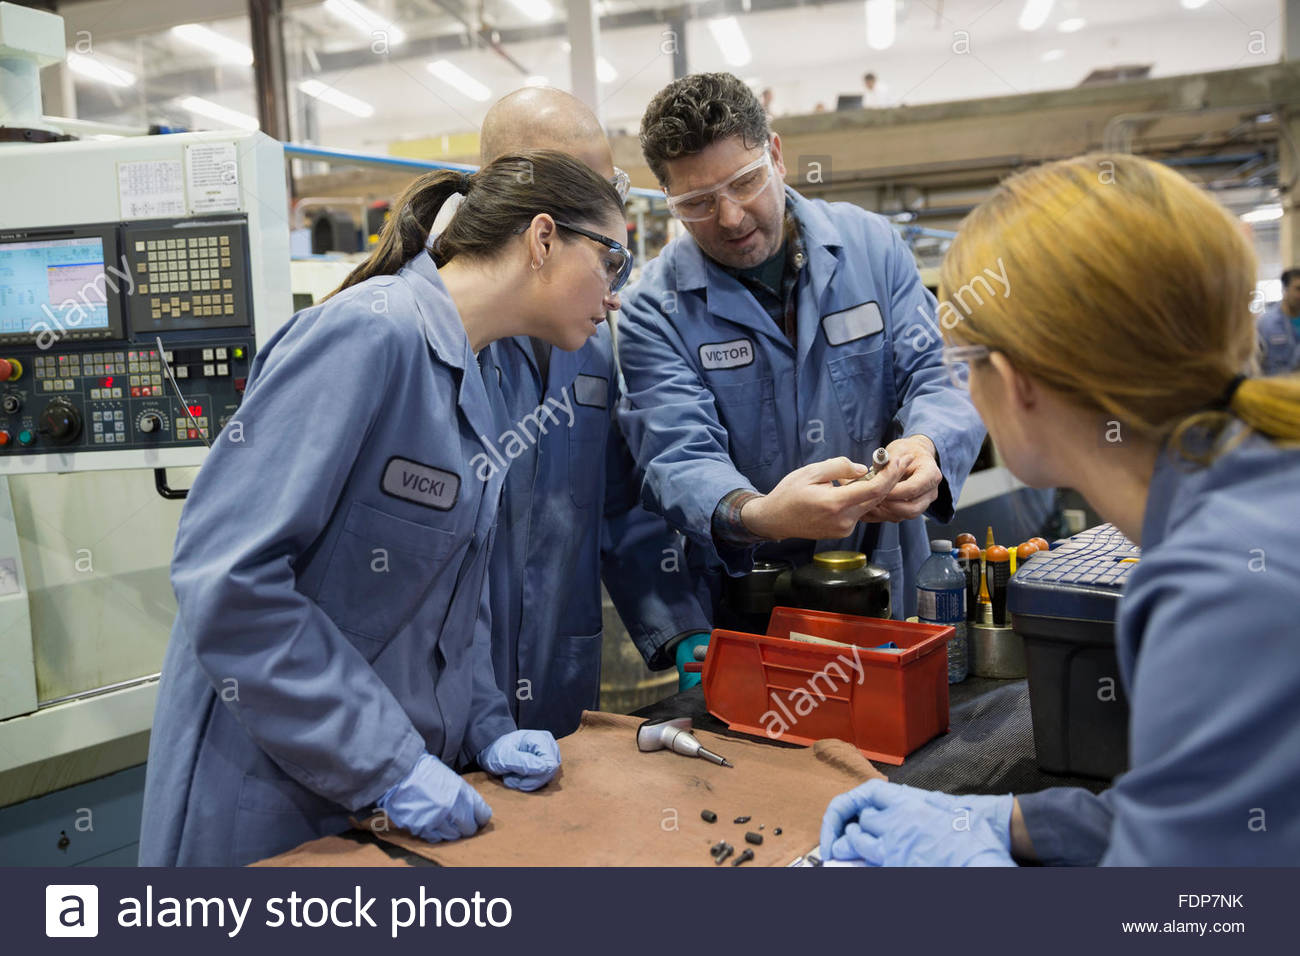 Workers examining parts in factory - Stock Image